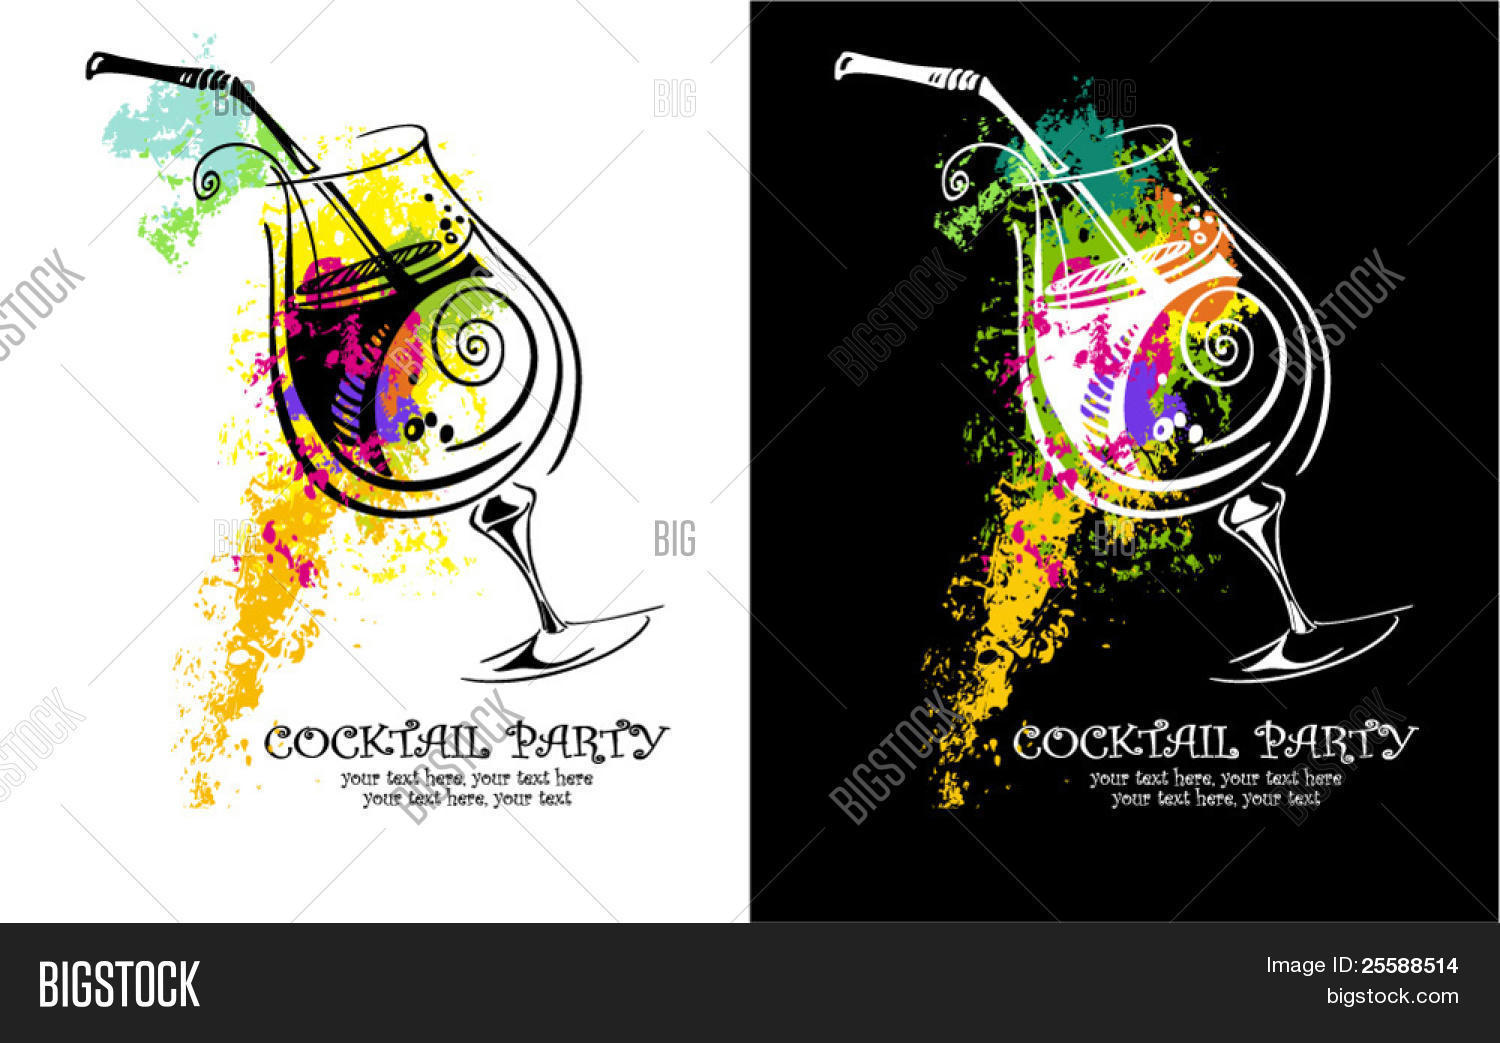 b680ee6f1a Cocktail Party Vector & Photo (Free Trial) | Bigstock